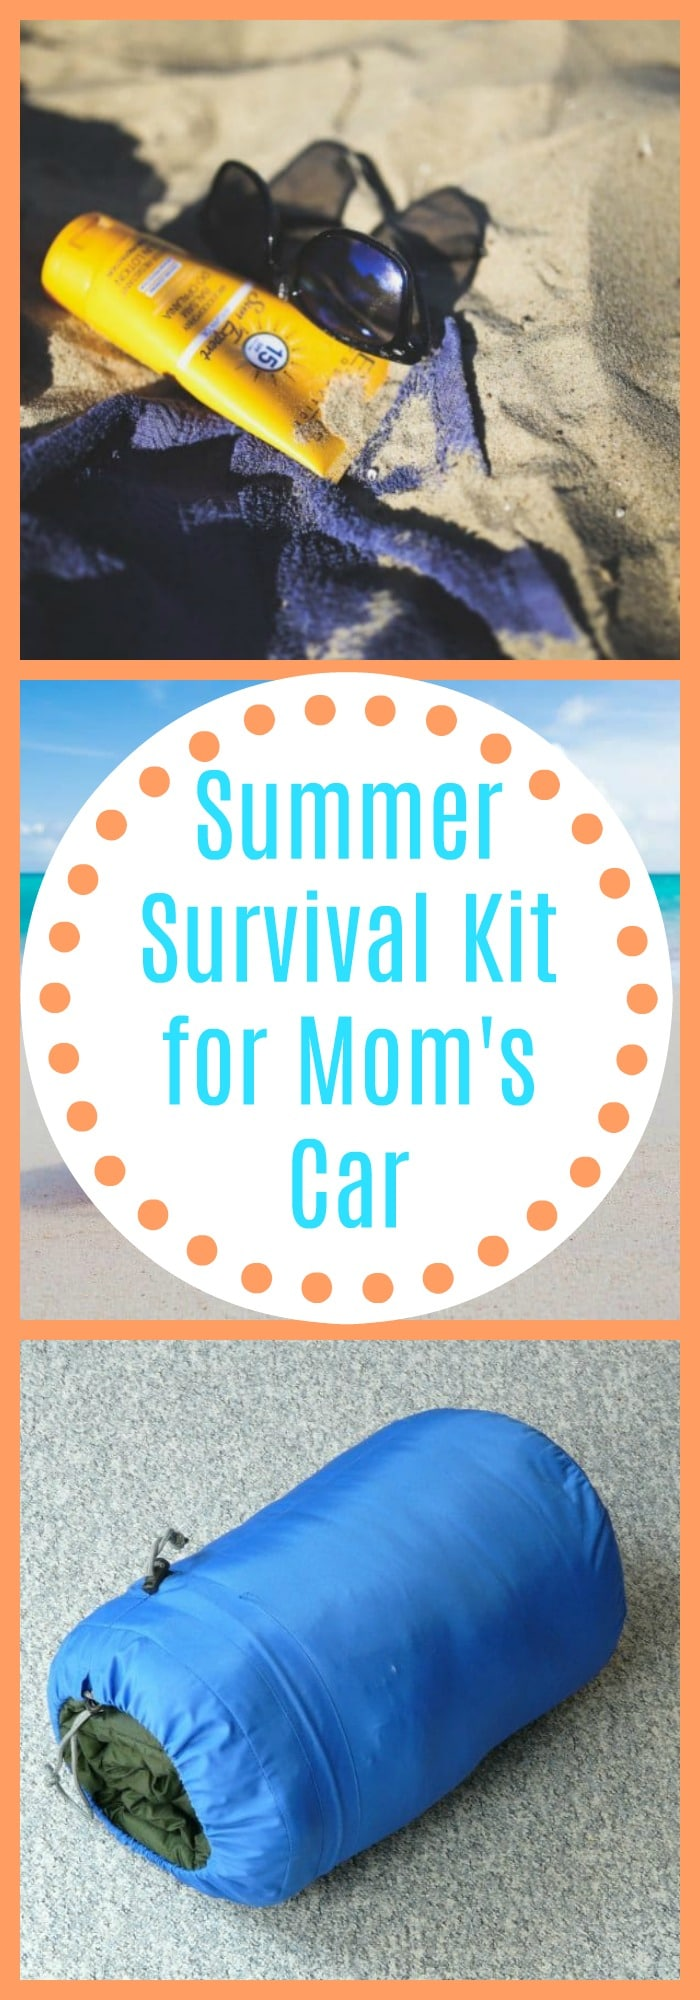 Summer Survivl Kit for Mom's Car